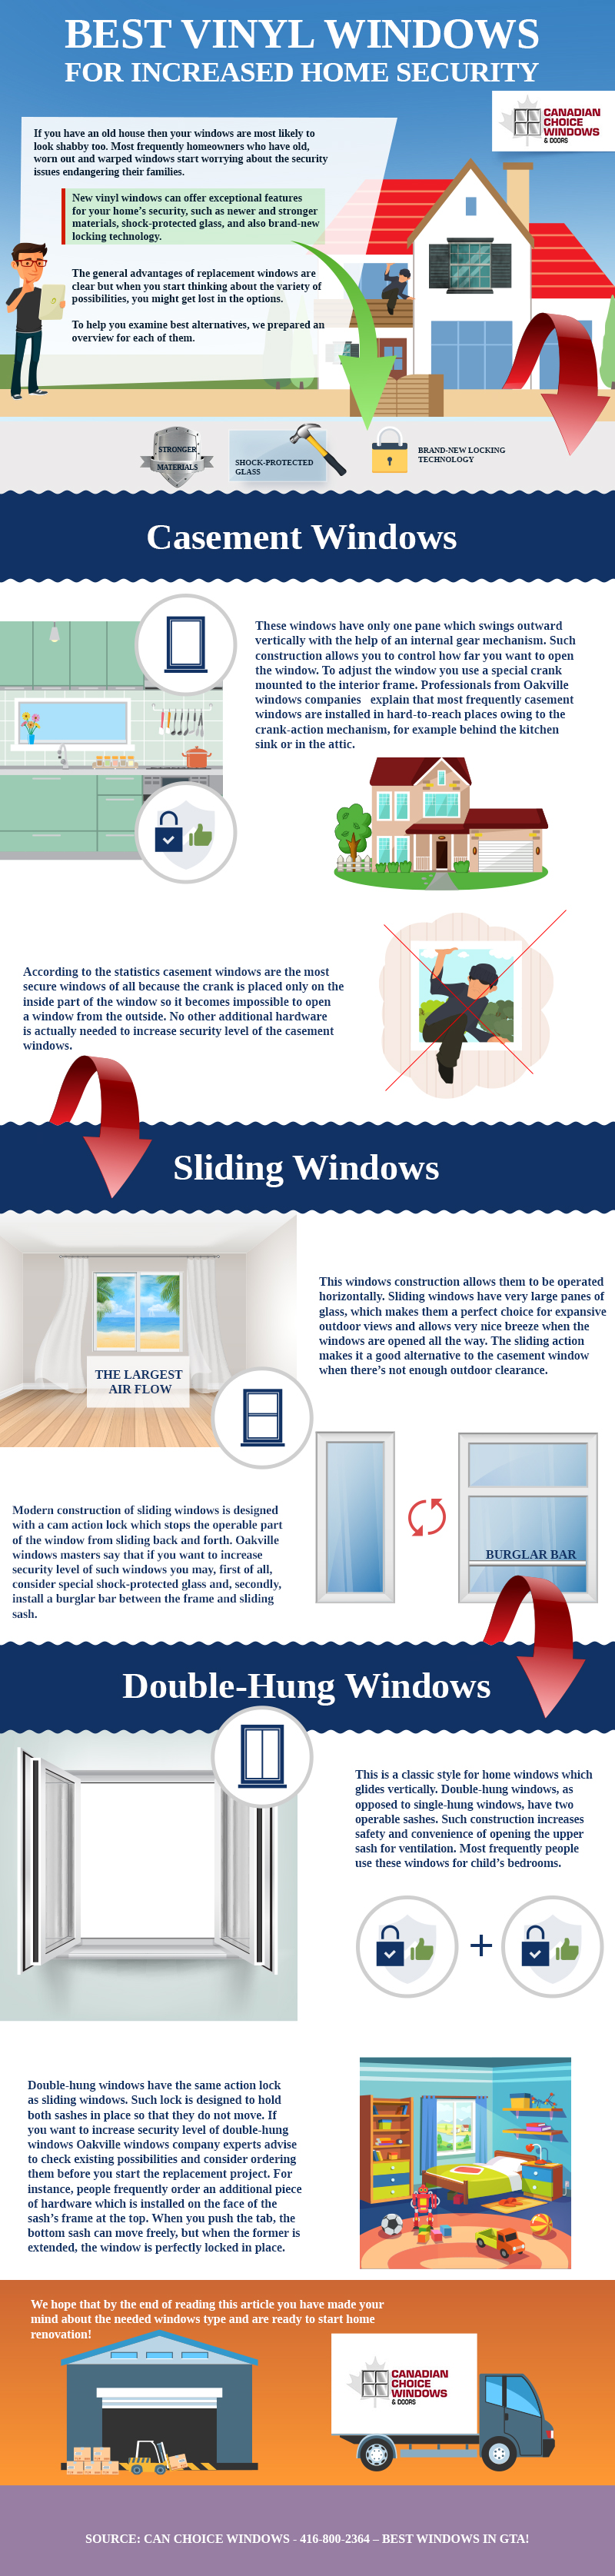 Best Vinyl Windows for Increased Home Security